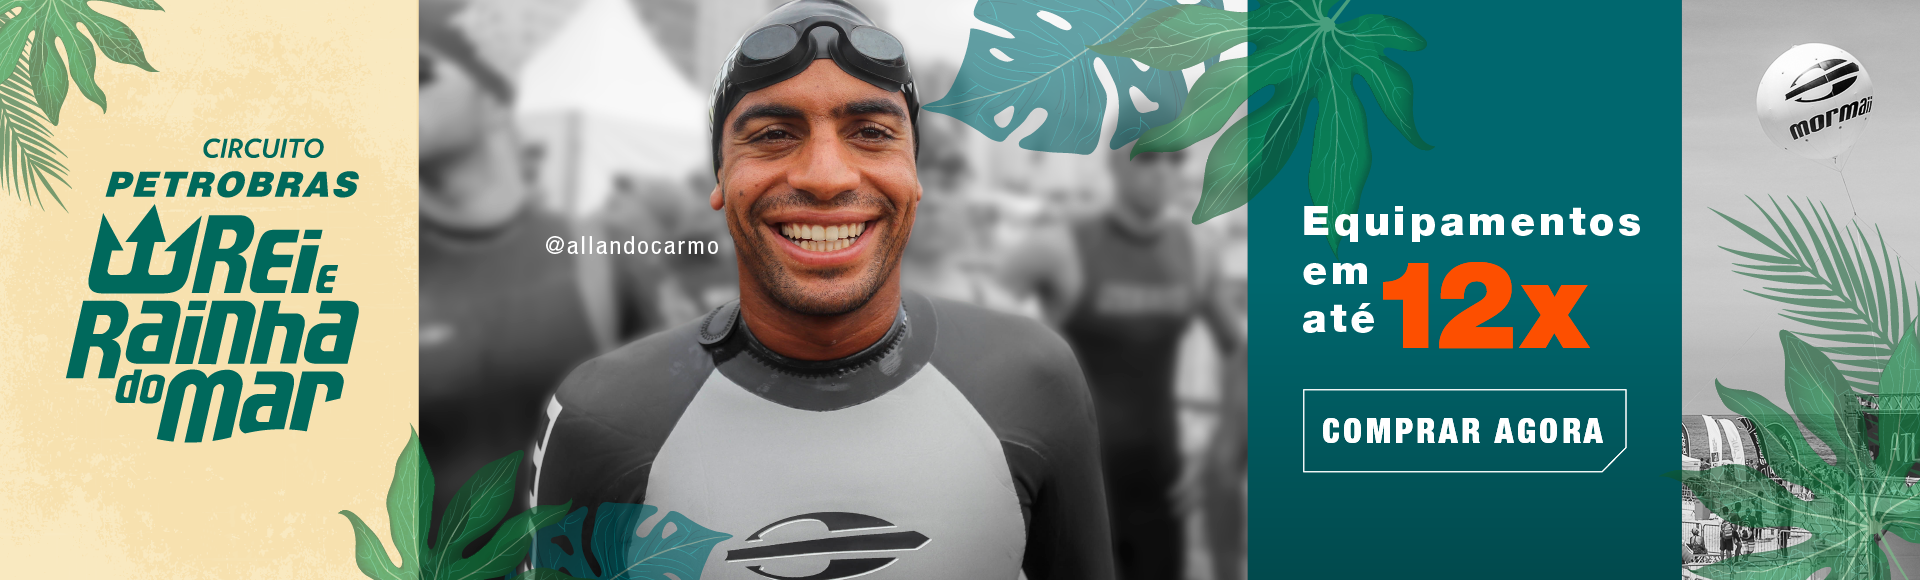 rei-e-rainha-do-mar-banner-triathlon-mormaii